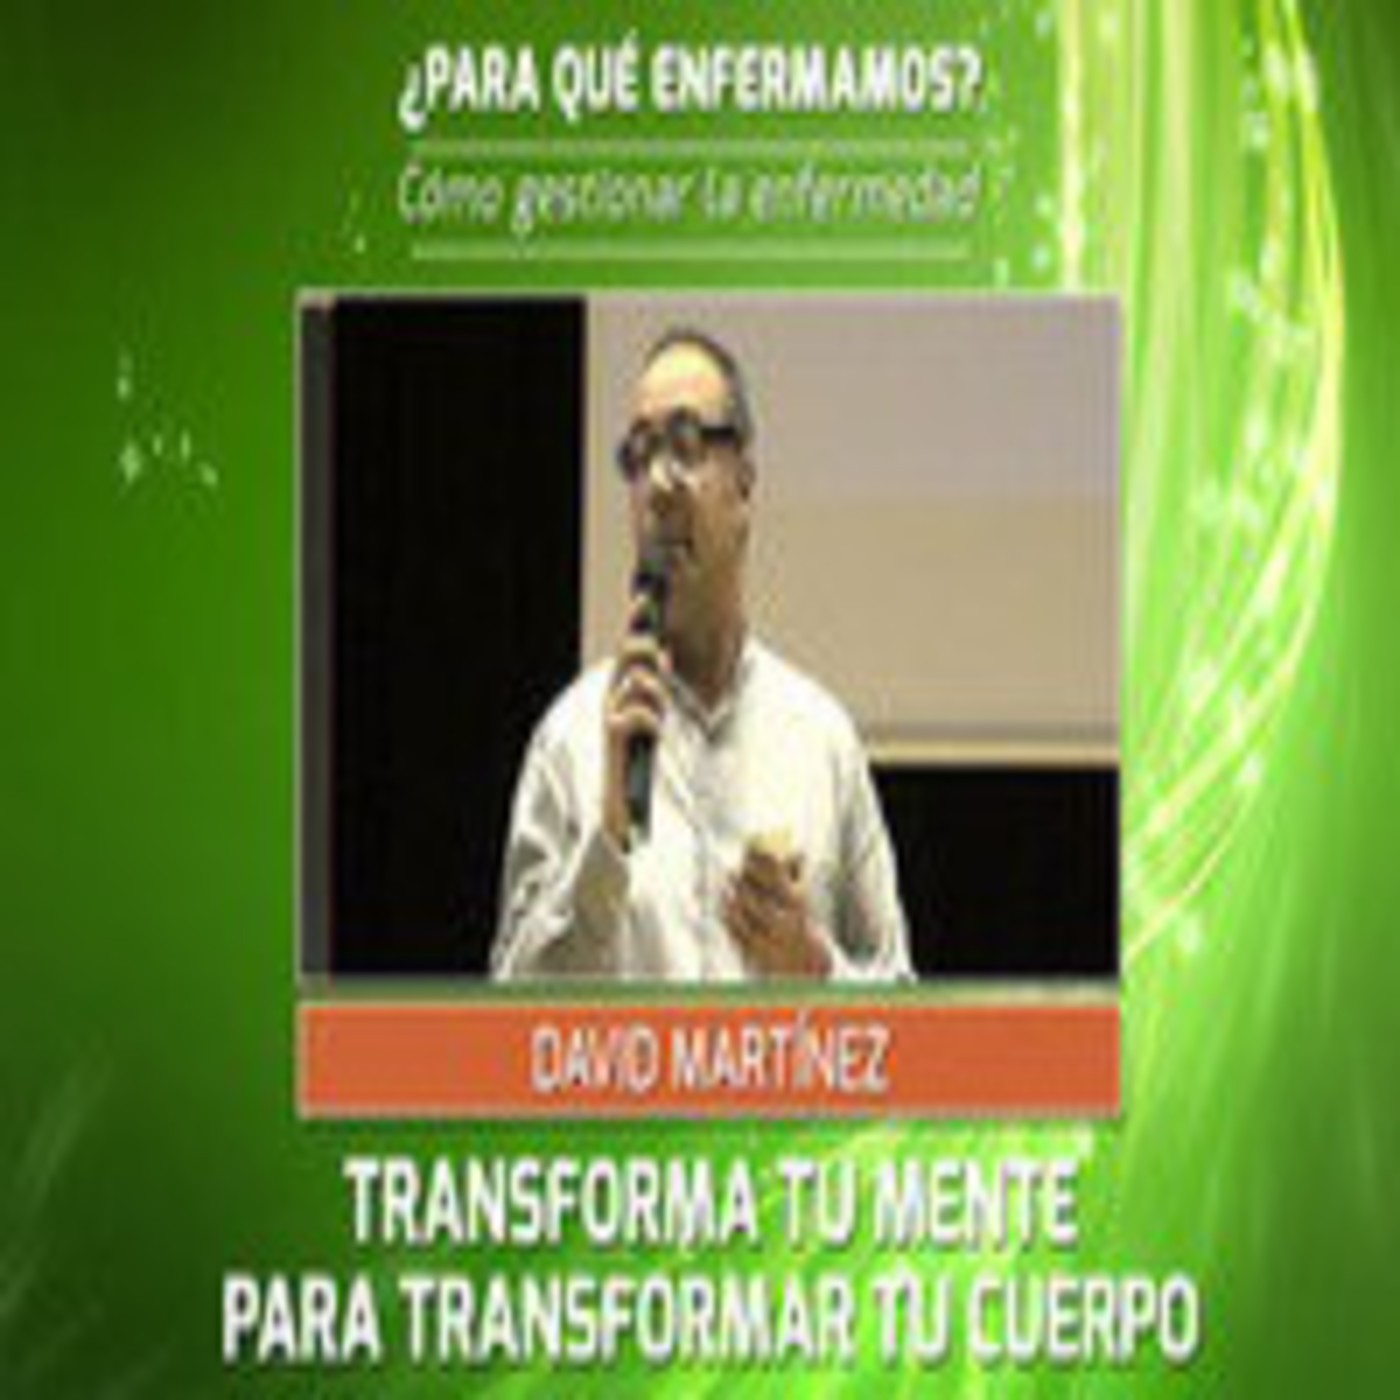 Transforma tu mente para transformar tu cuerpo - David Martinez